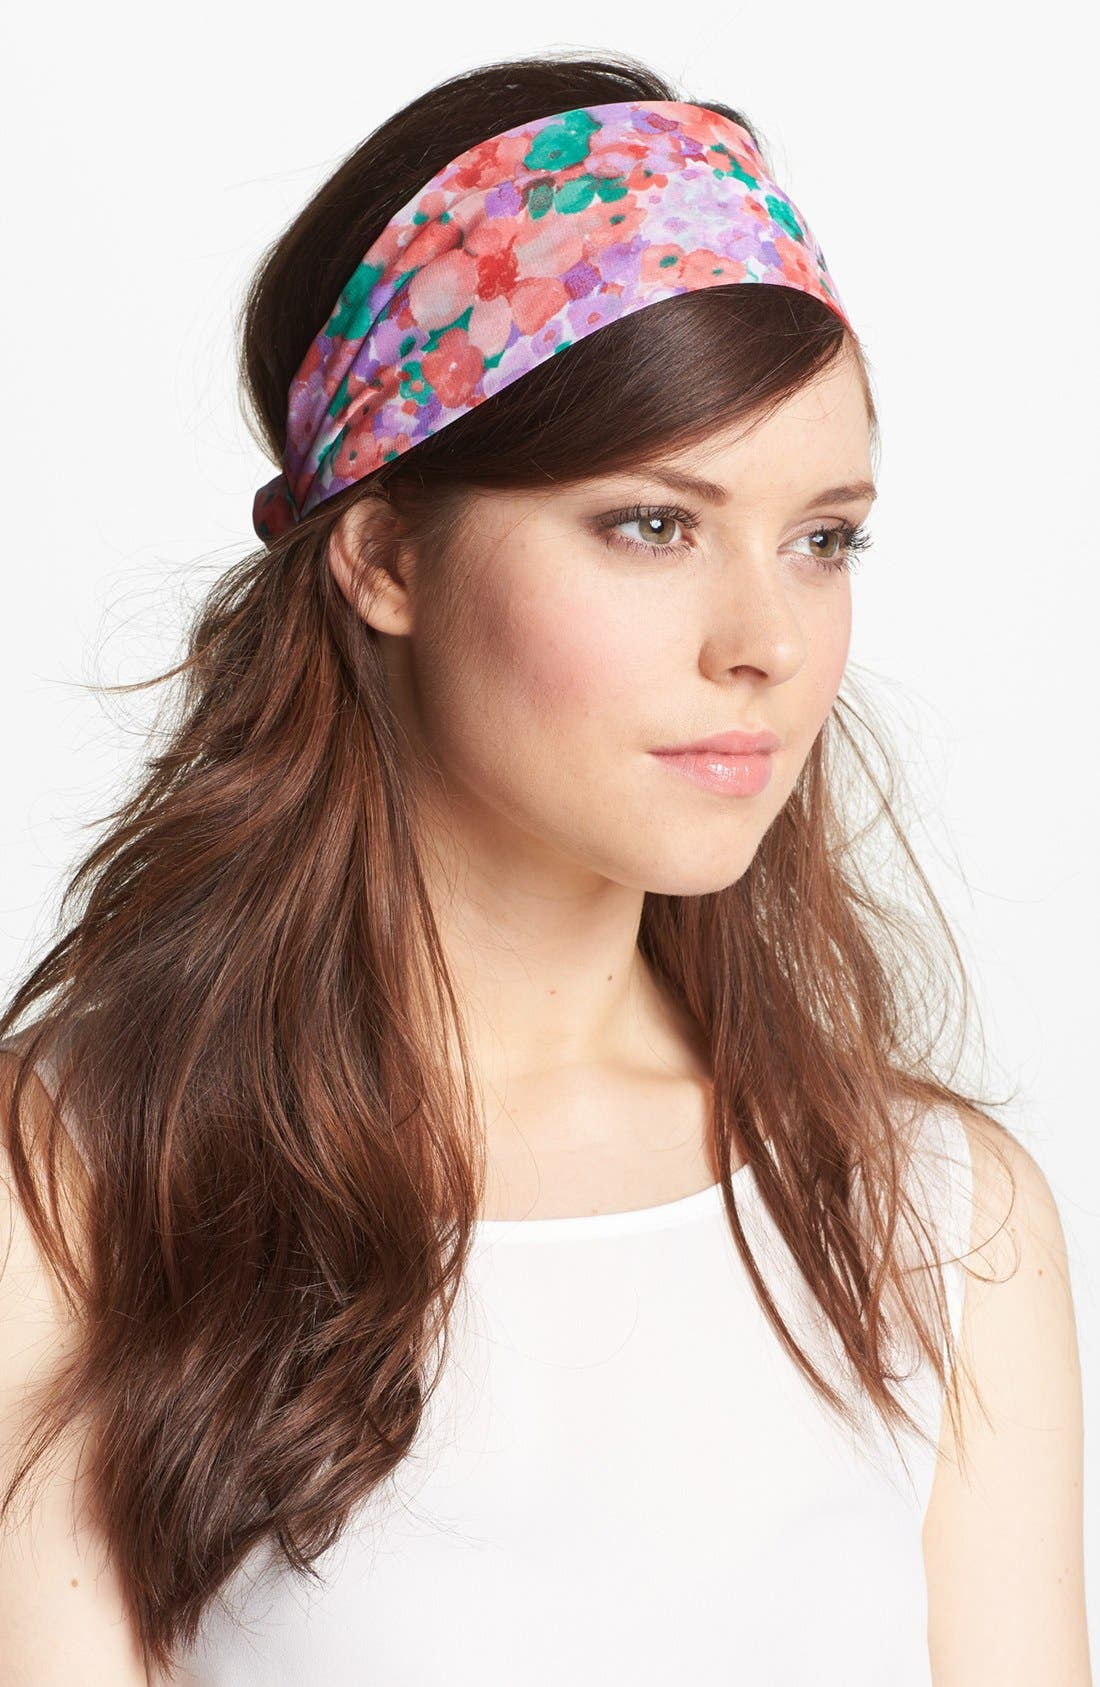 Alternate Image 1 Selected - Tasha 'Frolicking Floral' Head Wrap